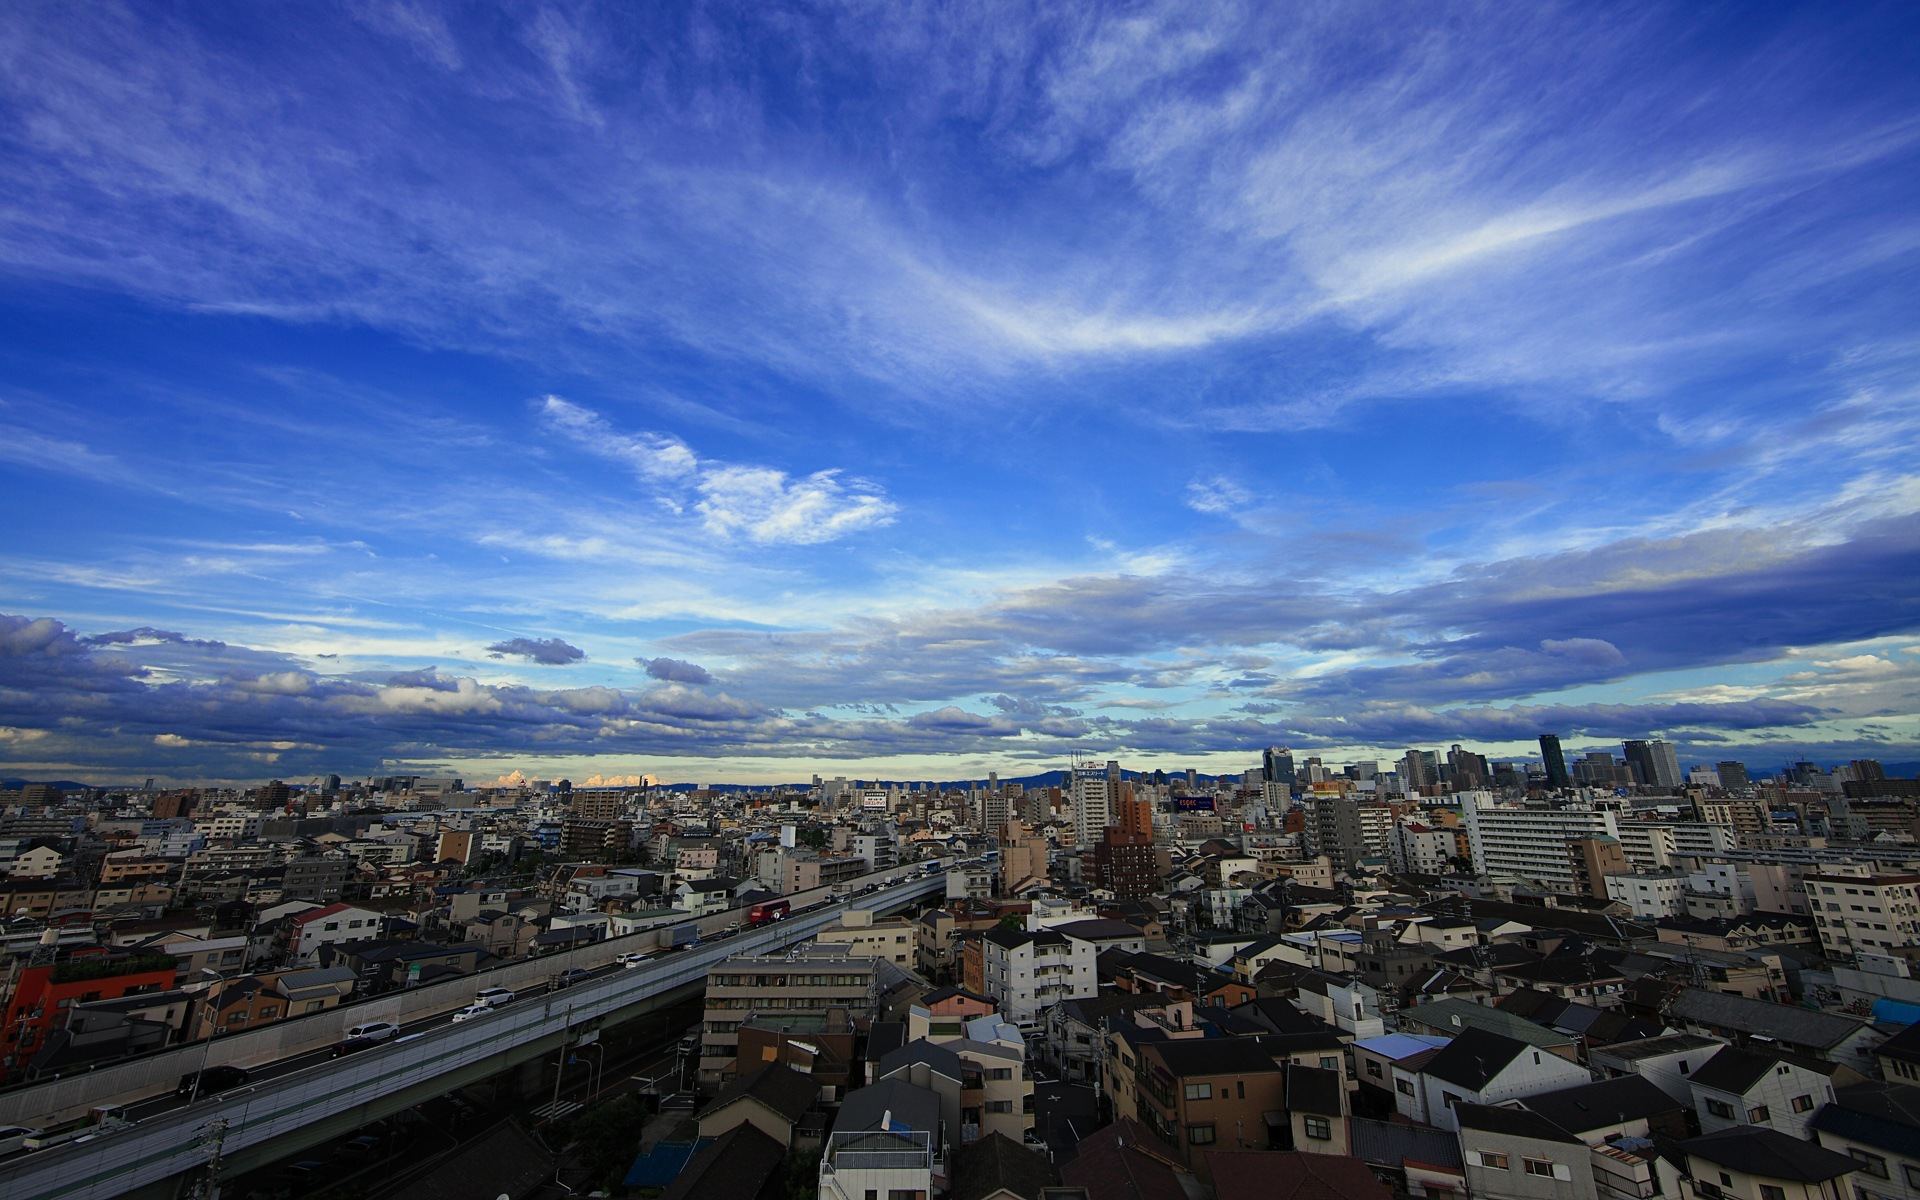 Japan City Beautiful Landscape Windows 8 Theme Wallpapers 4